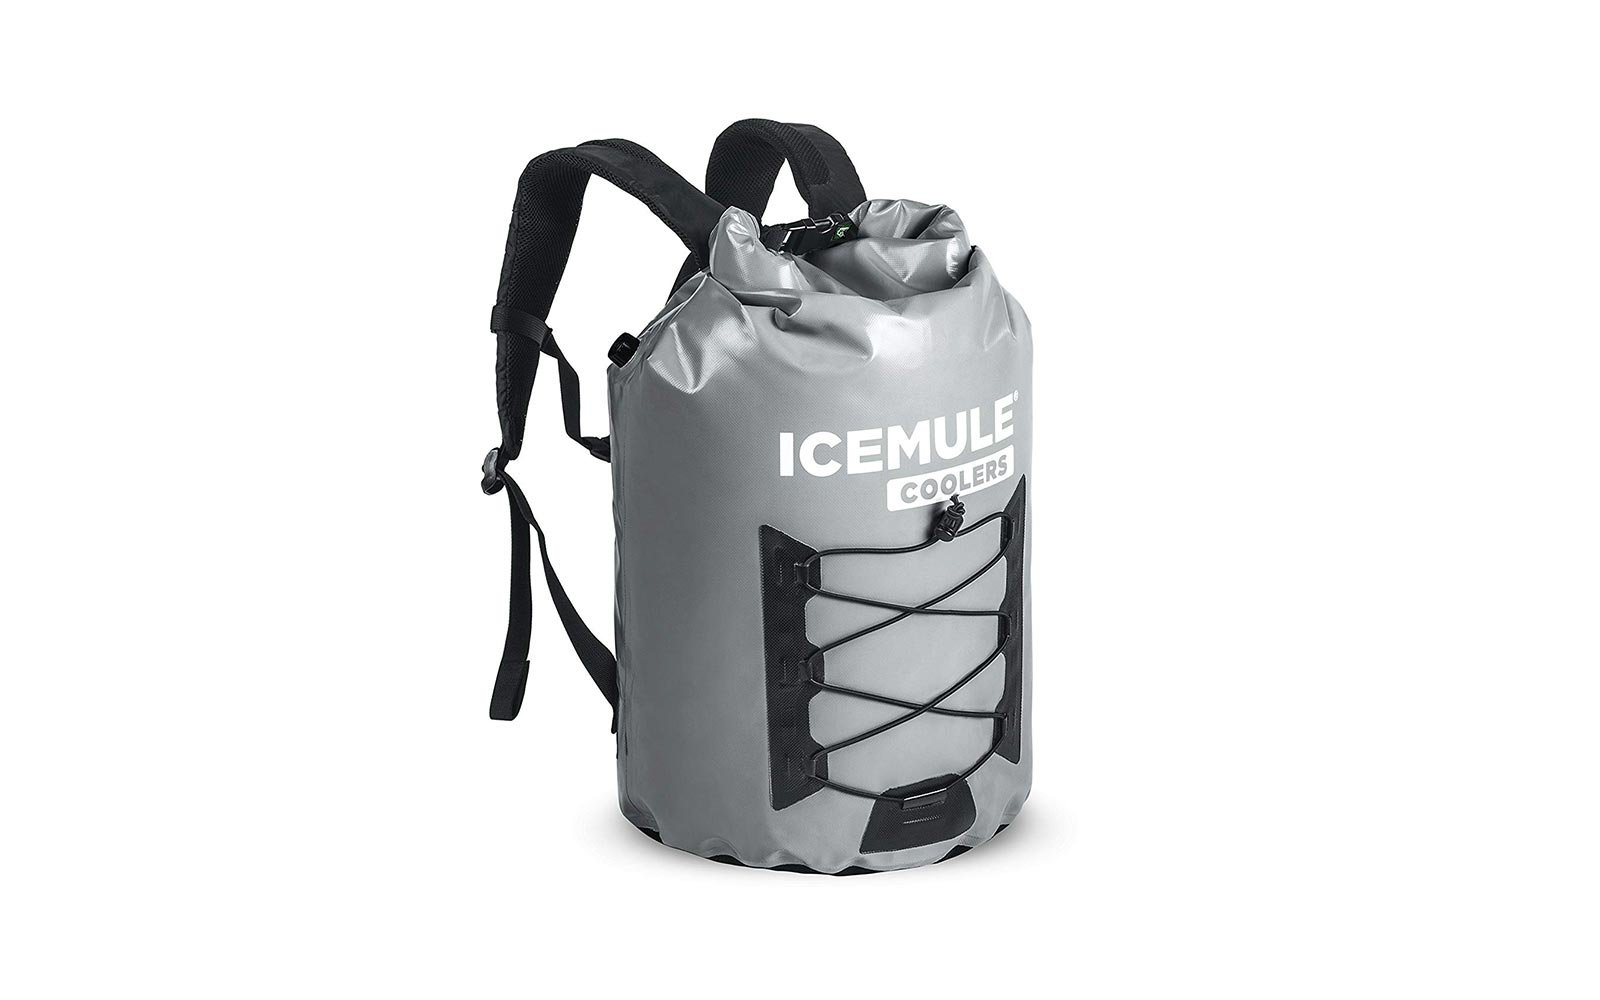 IceMule cooler backpack